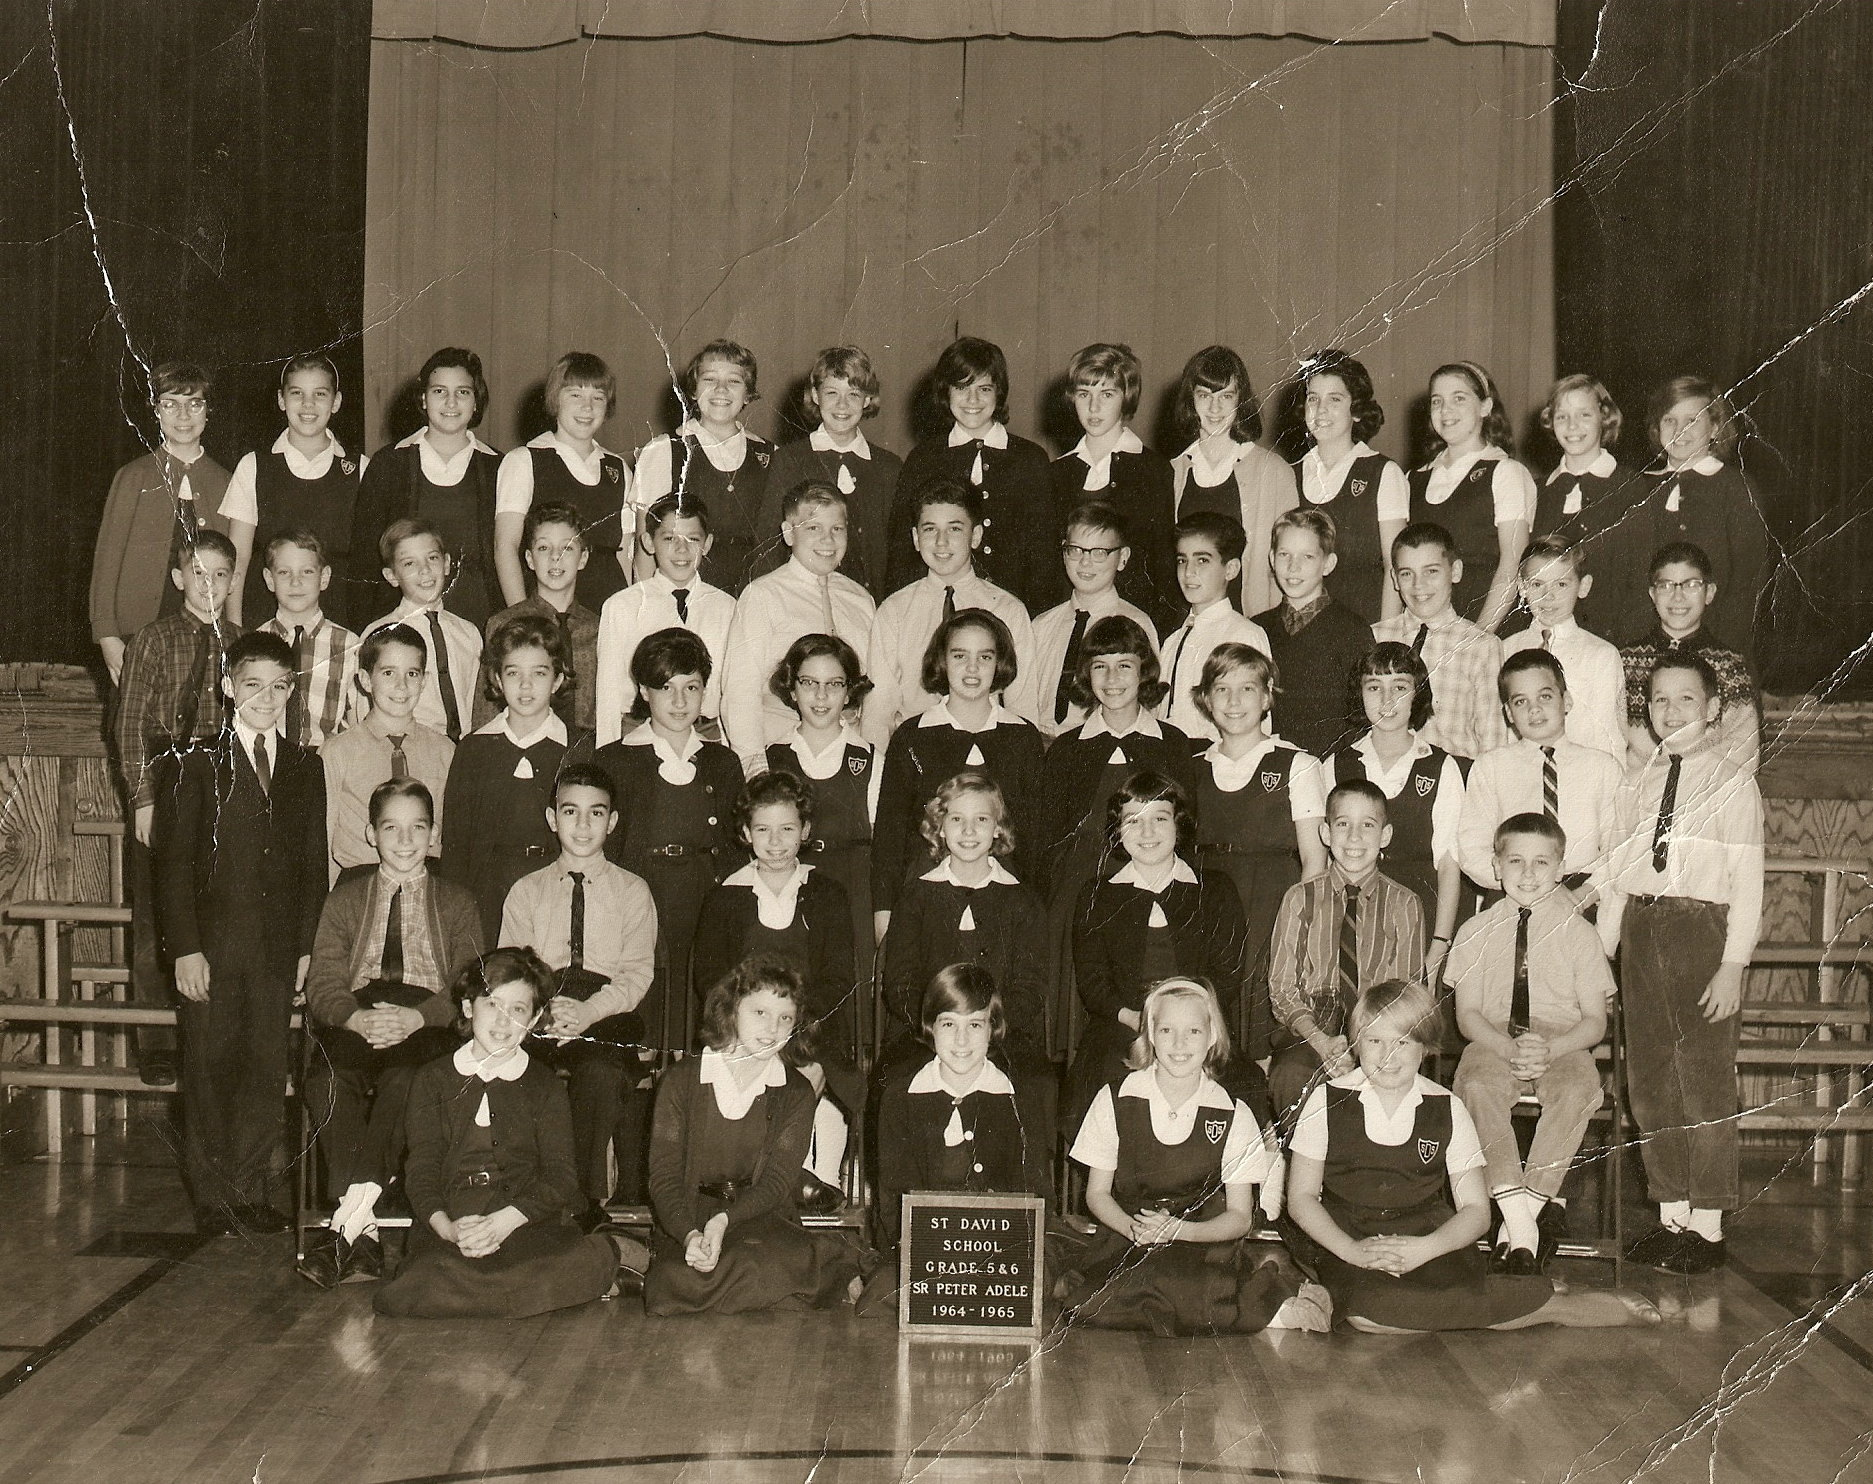 The class picture above shows Sr. Peter Adele's split 5th and 6th grade  class during the 1964-65 school year at Detroit St. David Elementary school.